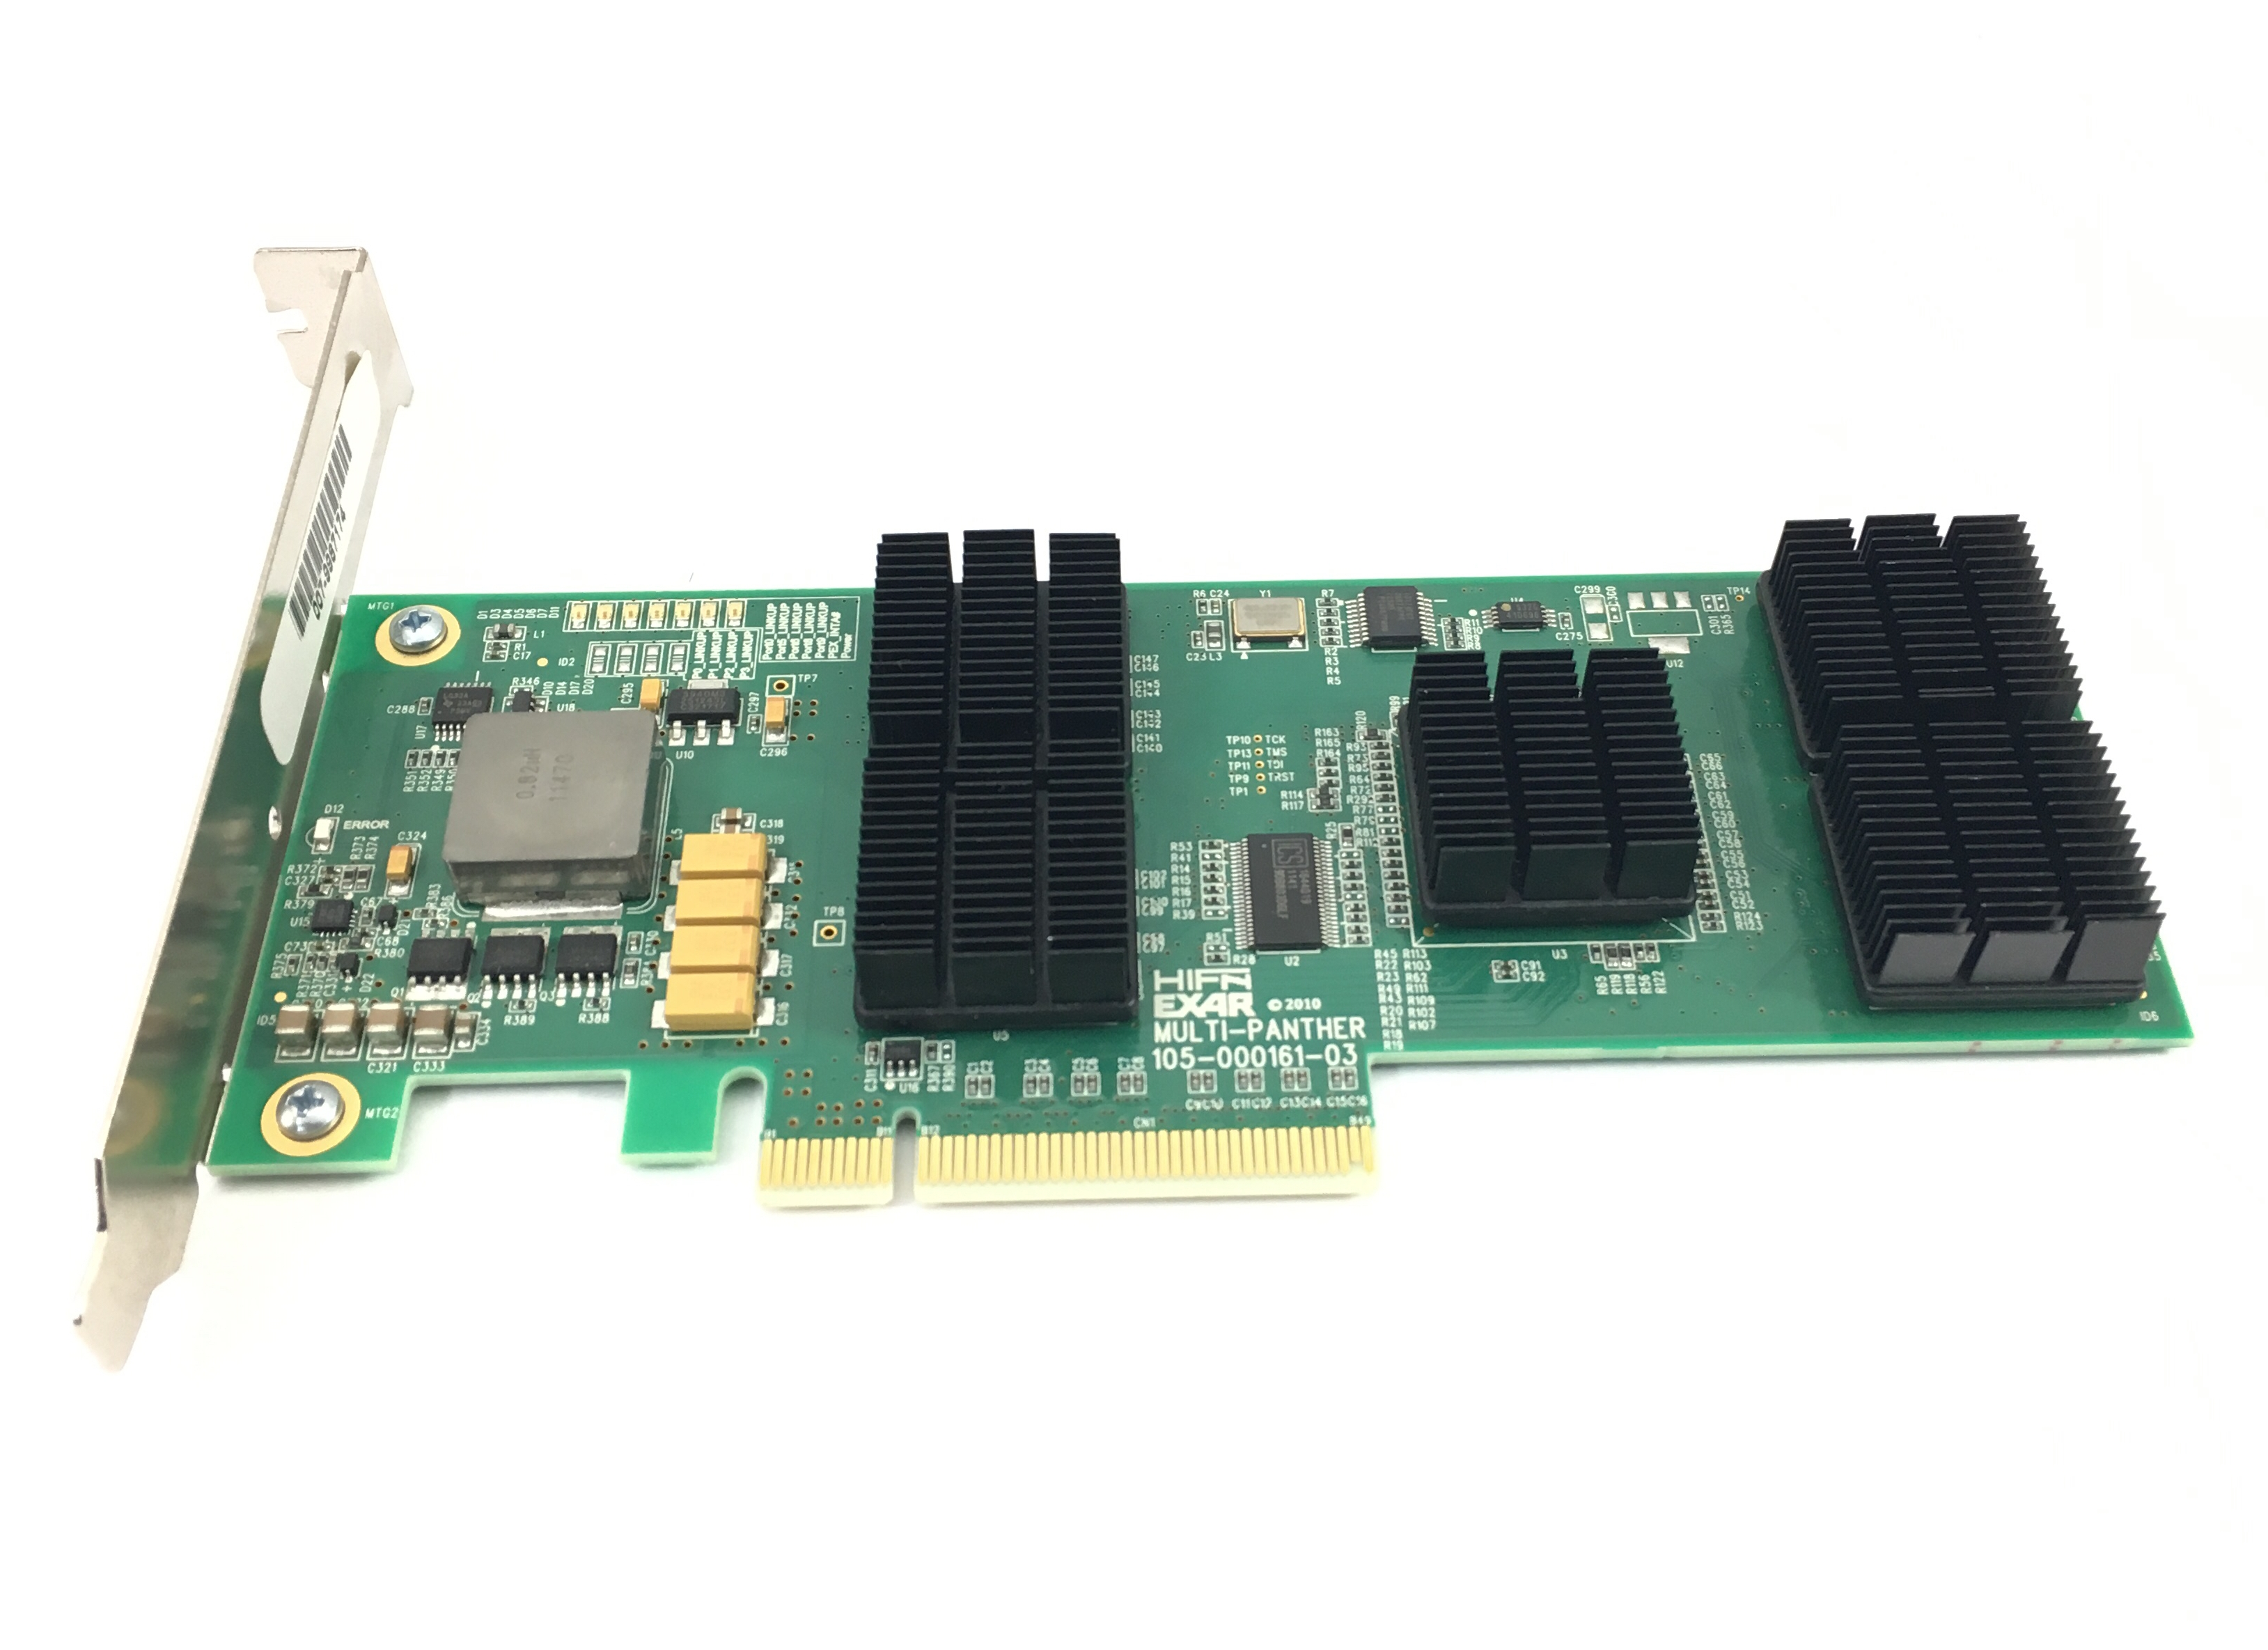 Exar Multi-Panther Dx1845B Data Compression Card (105-000161-03)